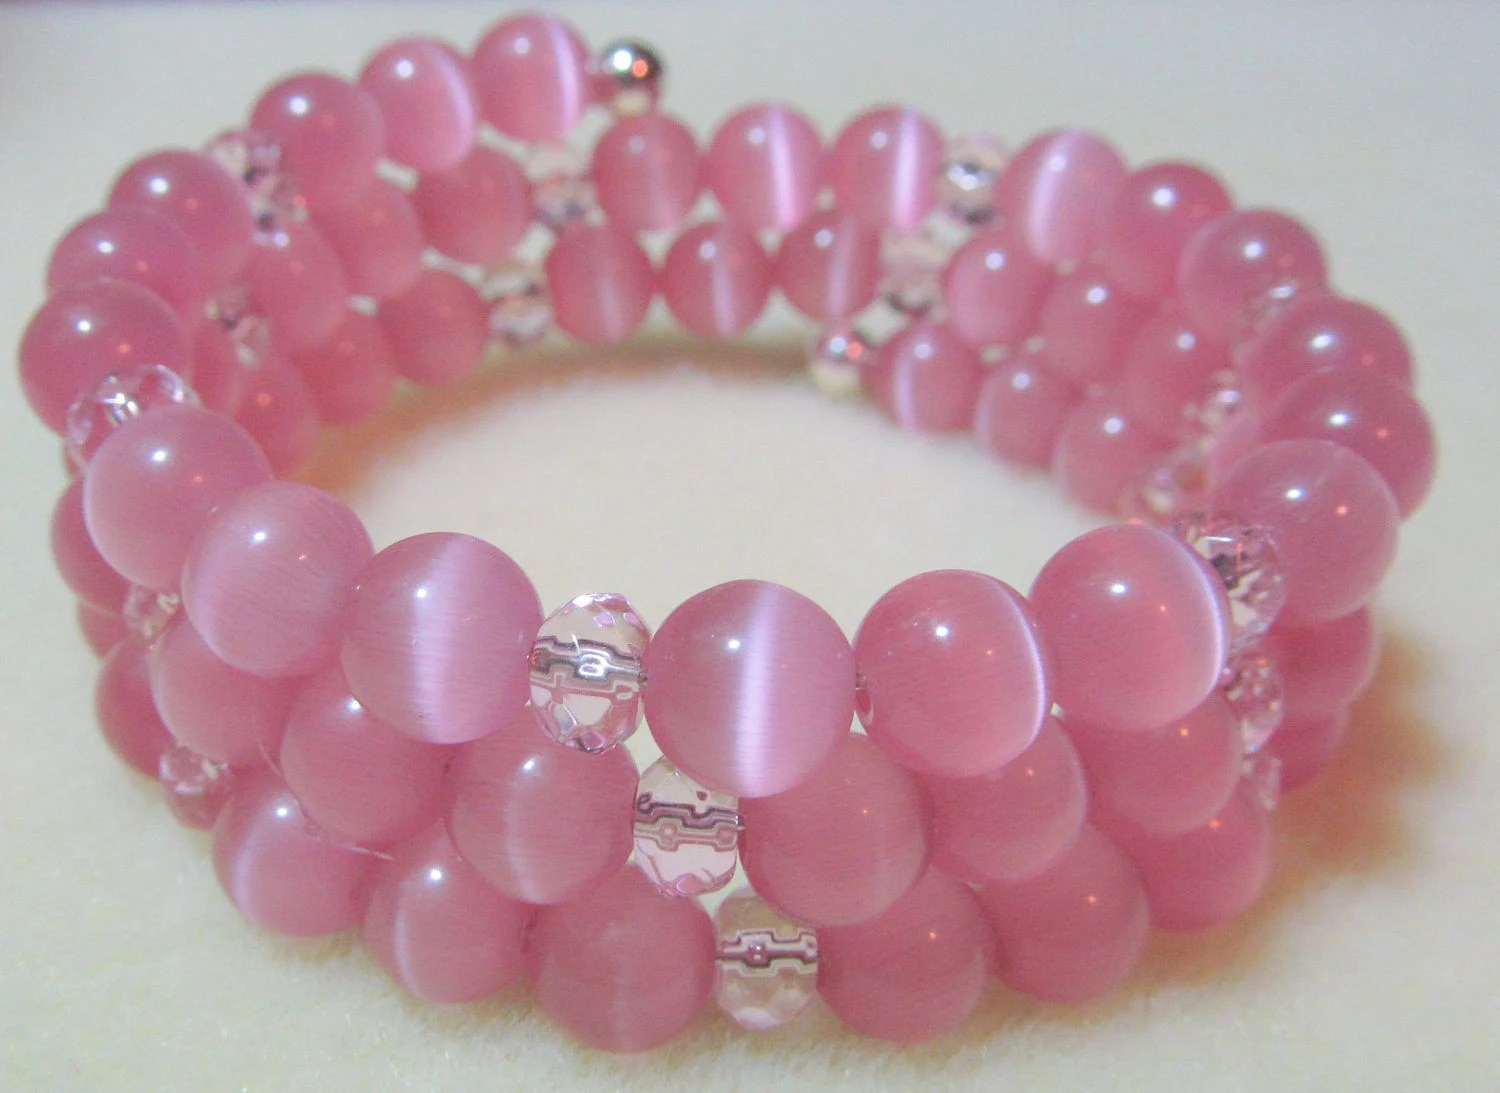 Bracelet - 8mm pale pink cat eye clear pink faceted rondelle glass bead memory wire